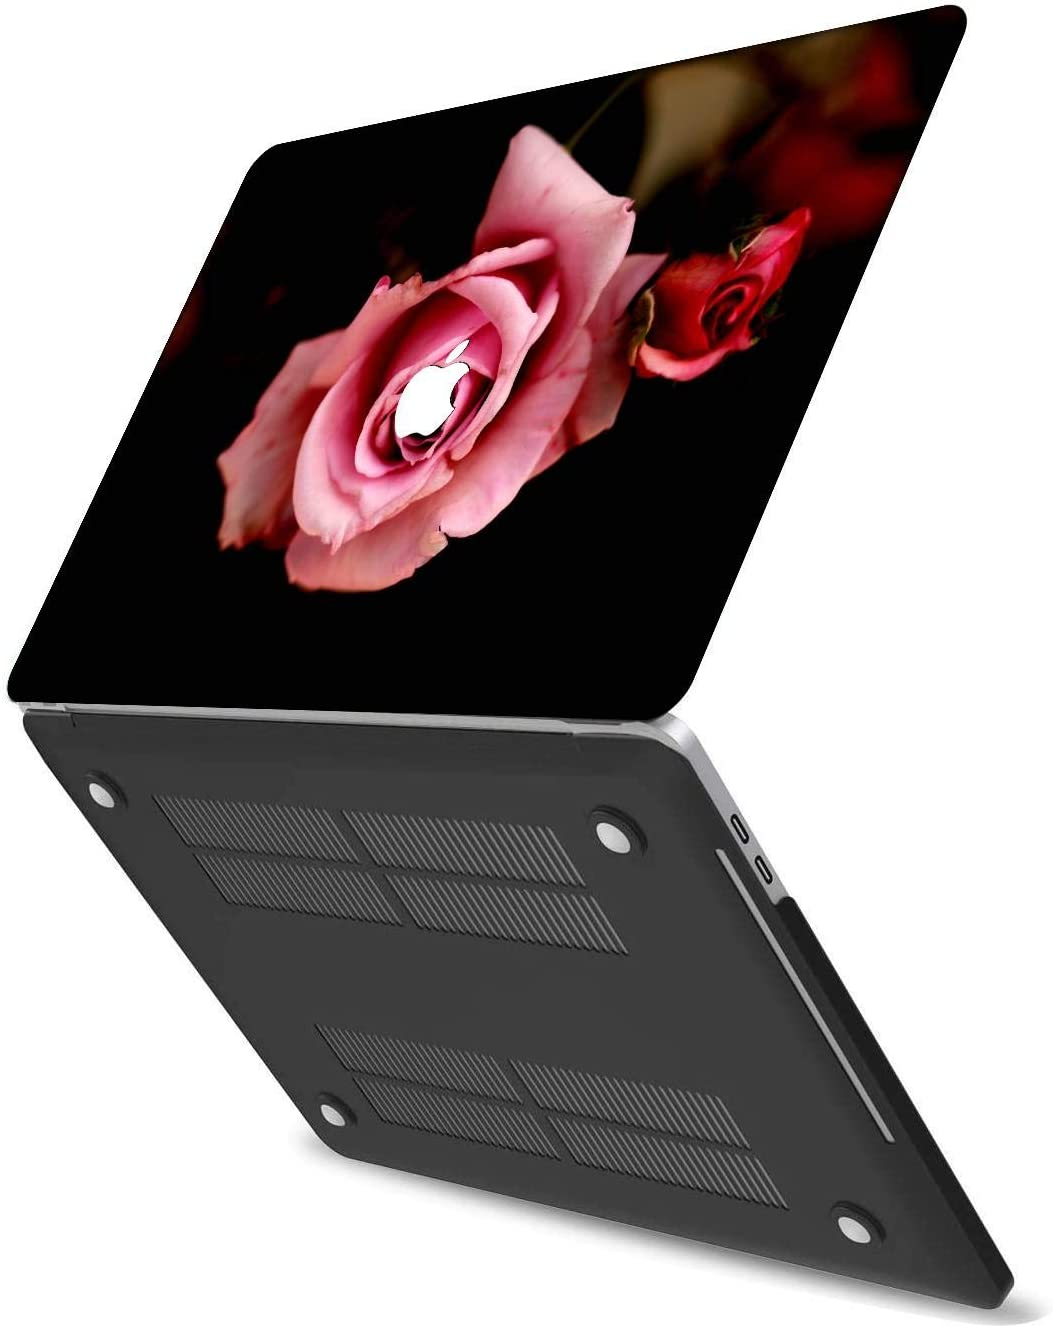 NKDCase Case for MacBook Pro 13 inch Retina Model A1425//A1502 Cut Out Design,Plastic Ultra Slim Light Hard Case Keyboard Cover Compatible MacBook Pro 13 inch No CD ROM//Touch,Flowers A 0396